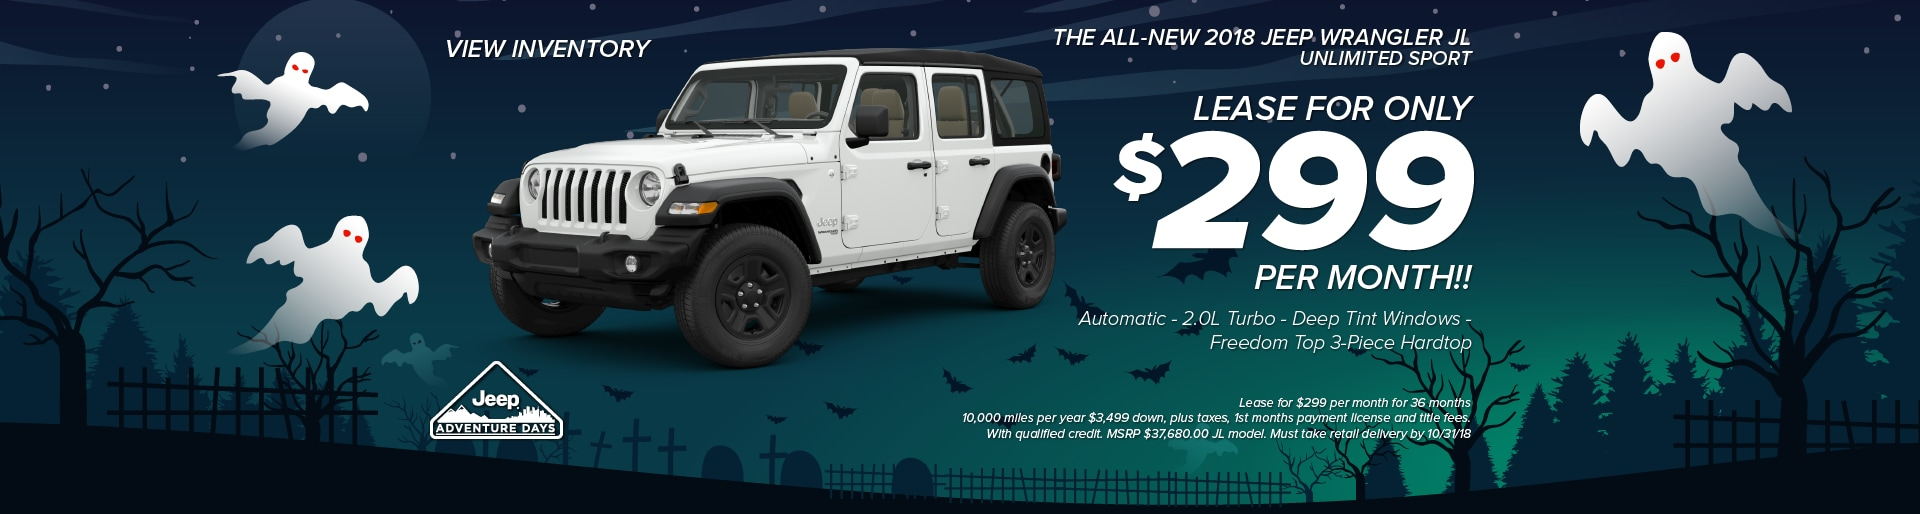 Chrysler Jeep Dodge RAM Vehicle Lease Specials